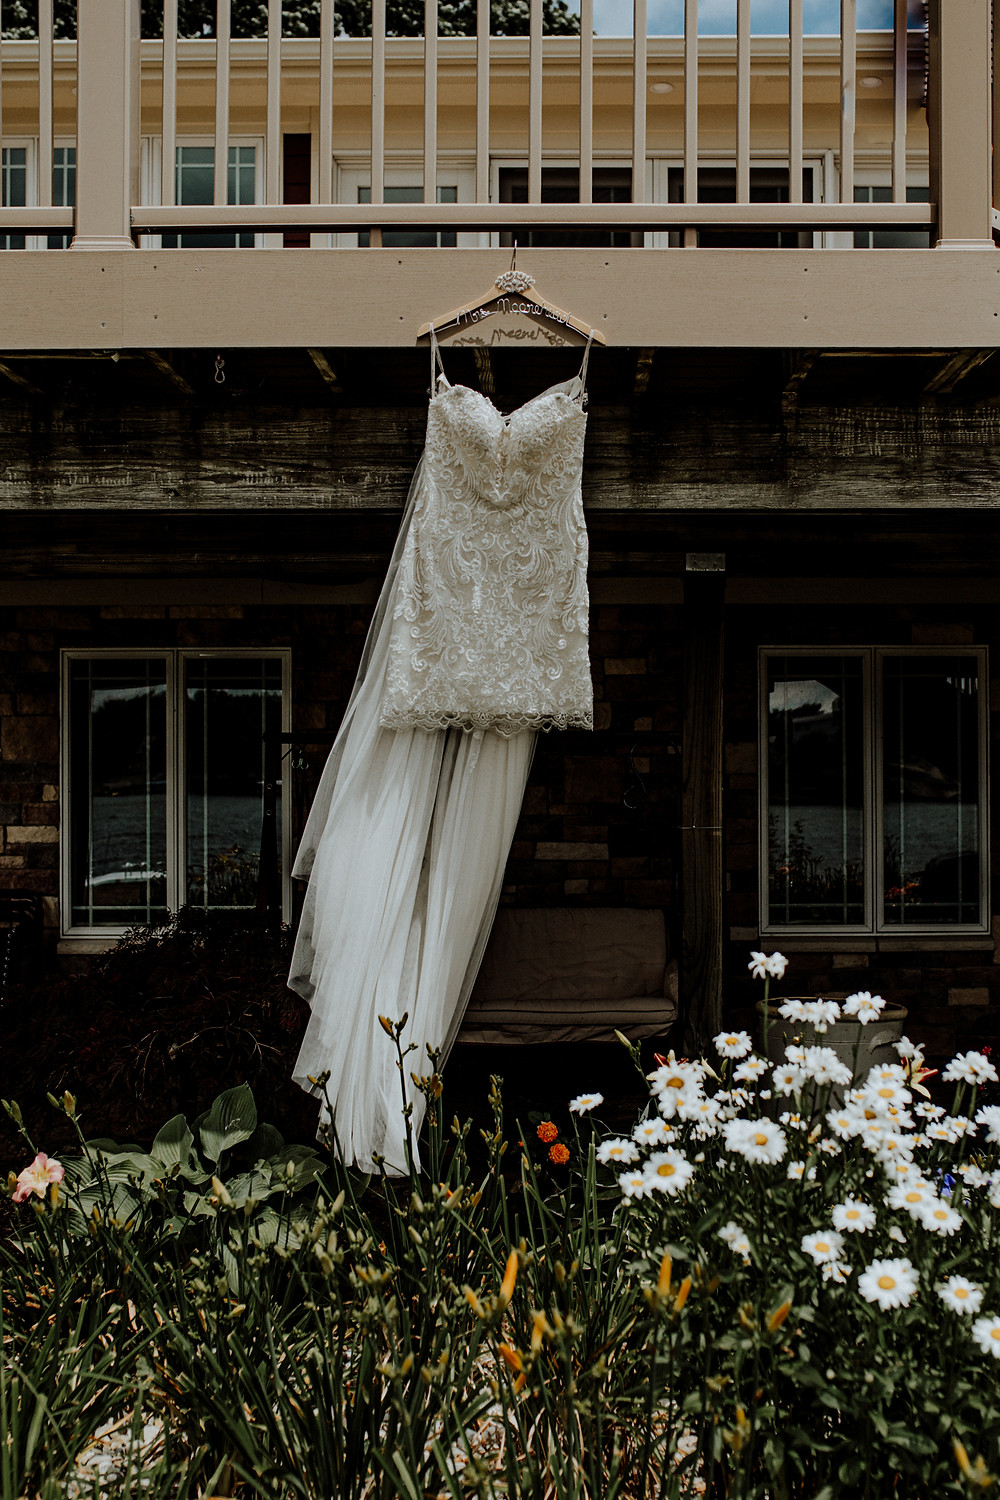 custom wedding dress by house of devaughn in jackson, michigan